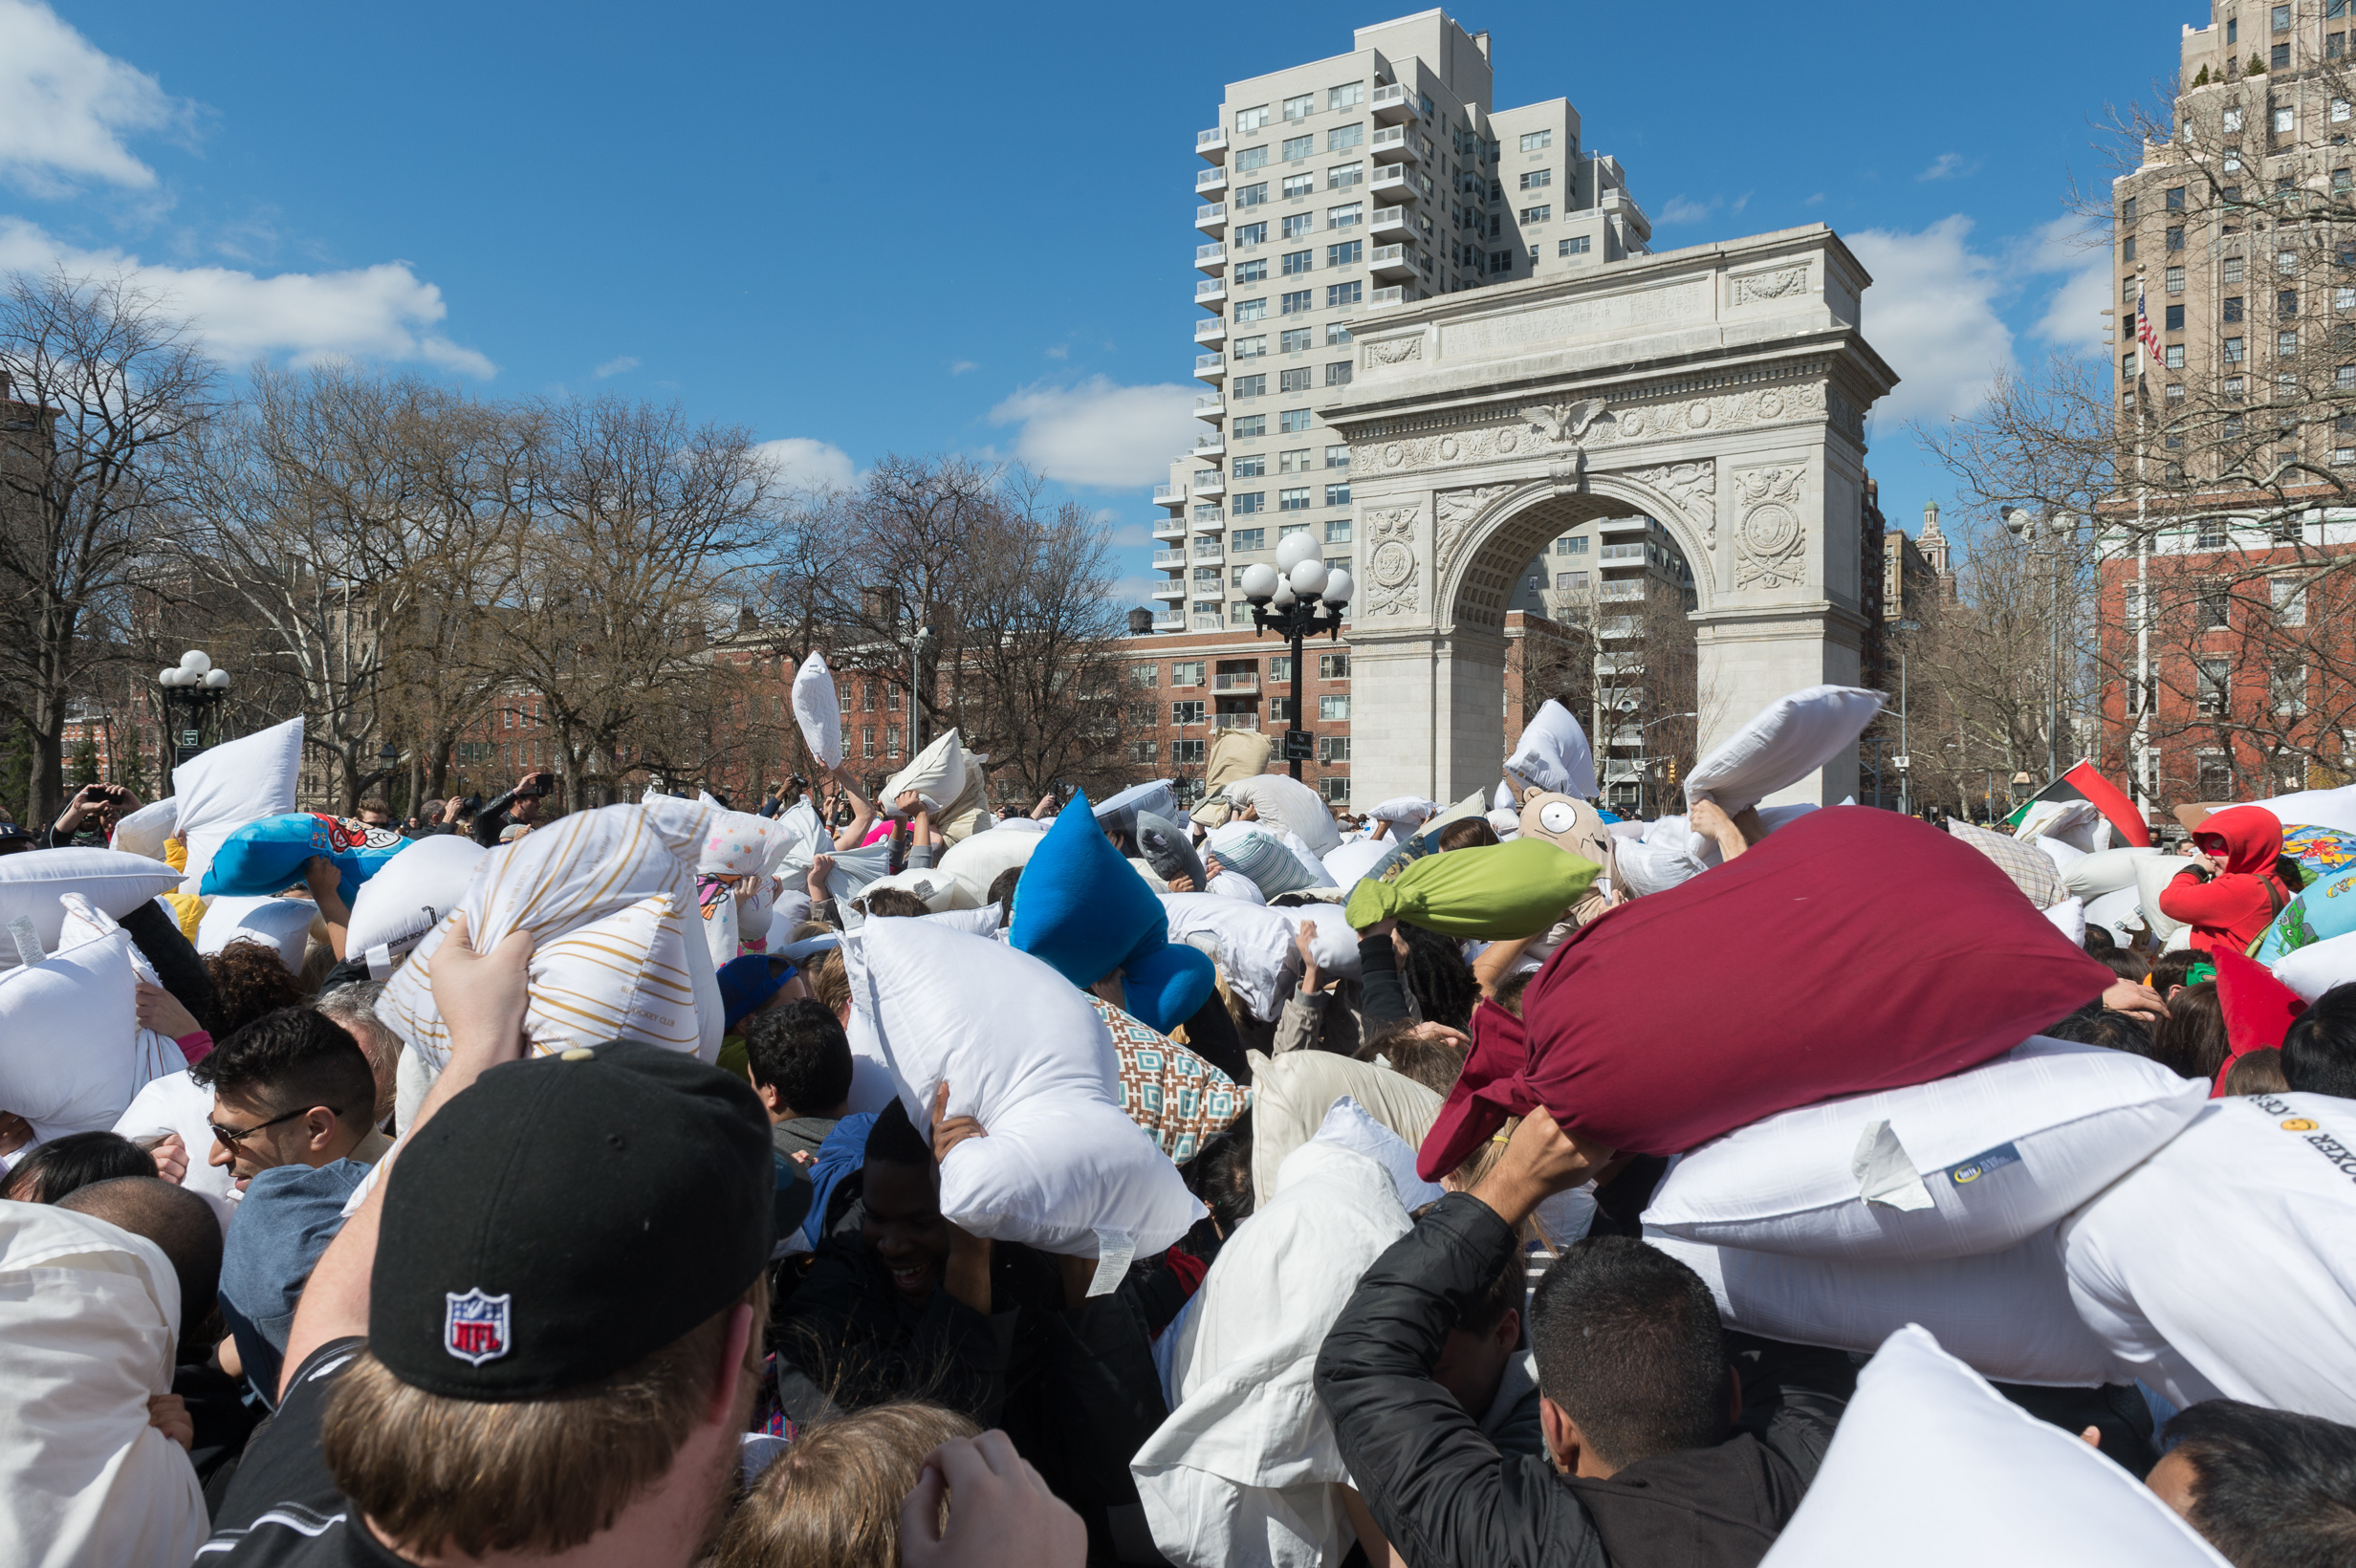 A massive pillow fight will take over Washington Square Park this weekend